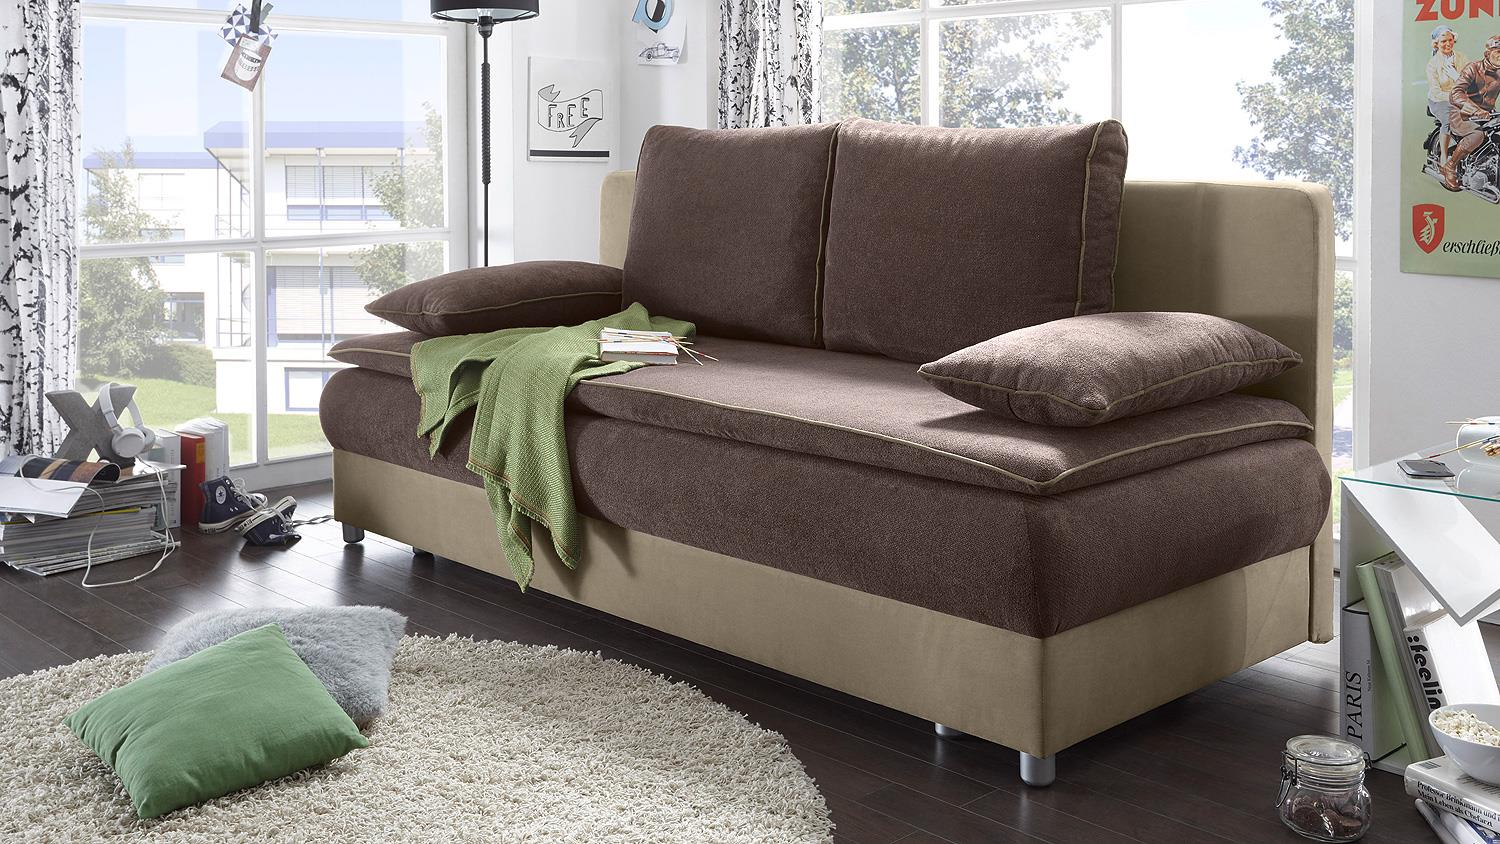 schlafsofa svenja sofa in braun beige dauerschl fer mit bettkasten. Black Bedroom Furniture Sets. Home Design Ideas